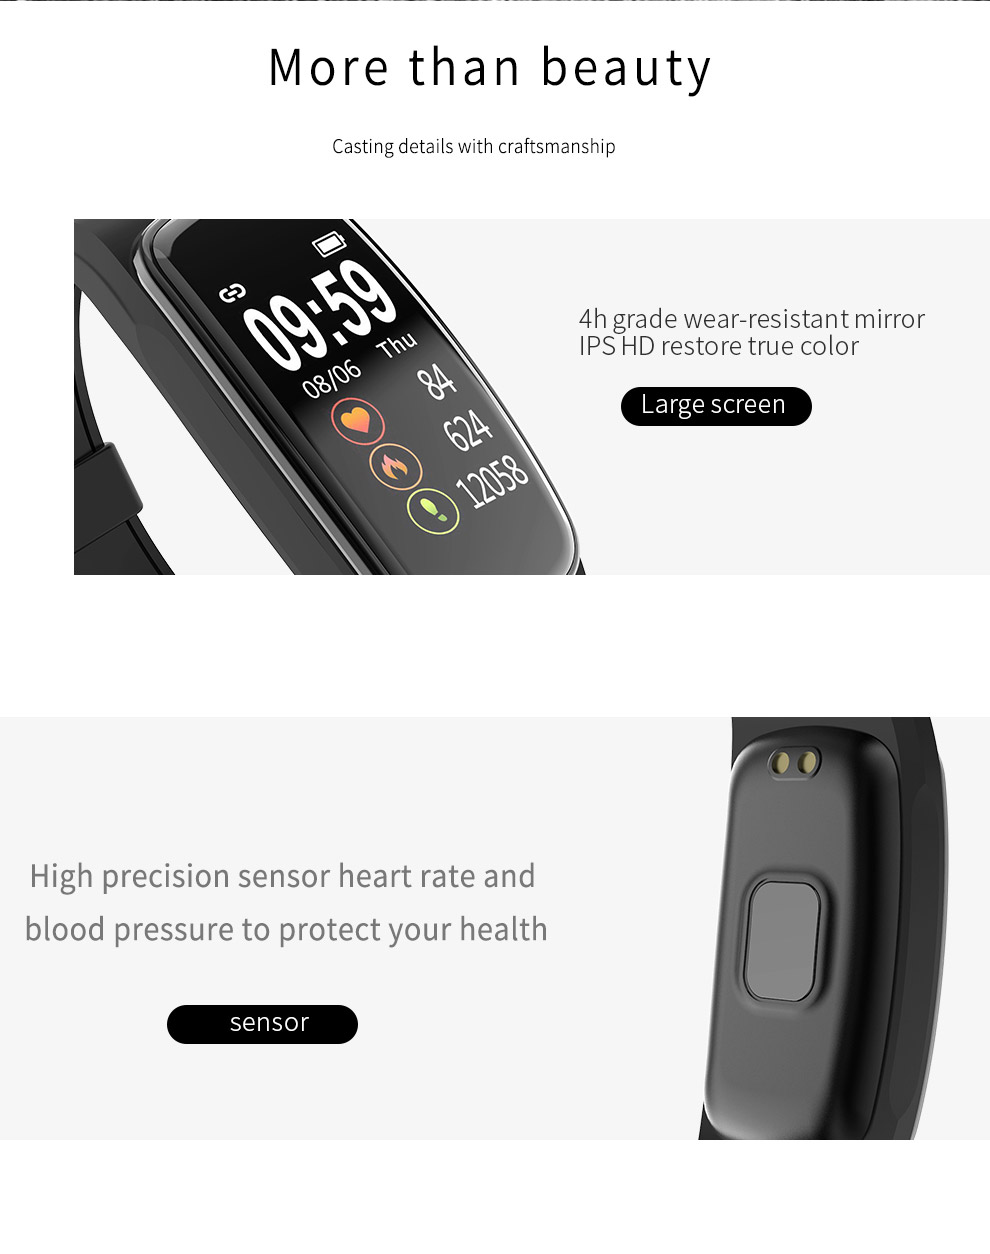 CORN CB01 Smart Bracelet Support Heart Rate Sleep Health Monitoring IP68 Waterproof Multi-Sport Mode Pedometer Intelligent Wristband - Black